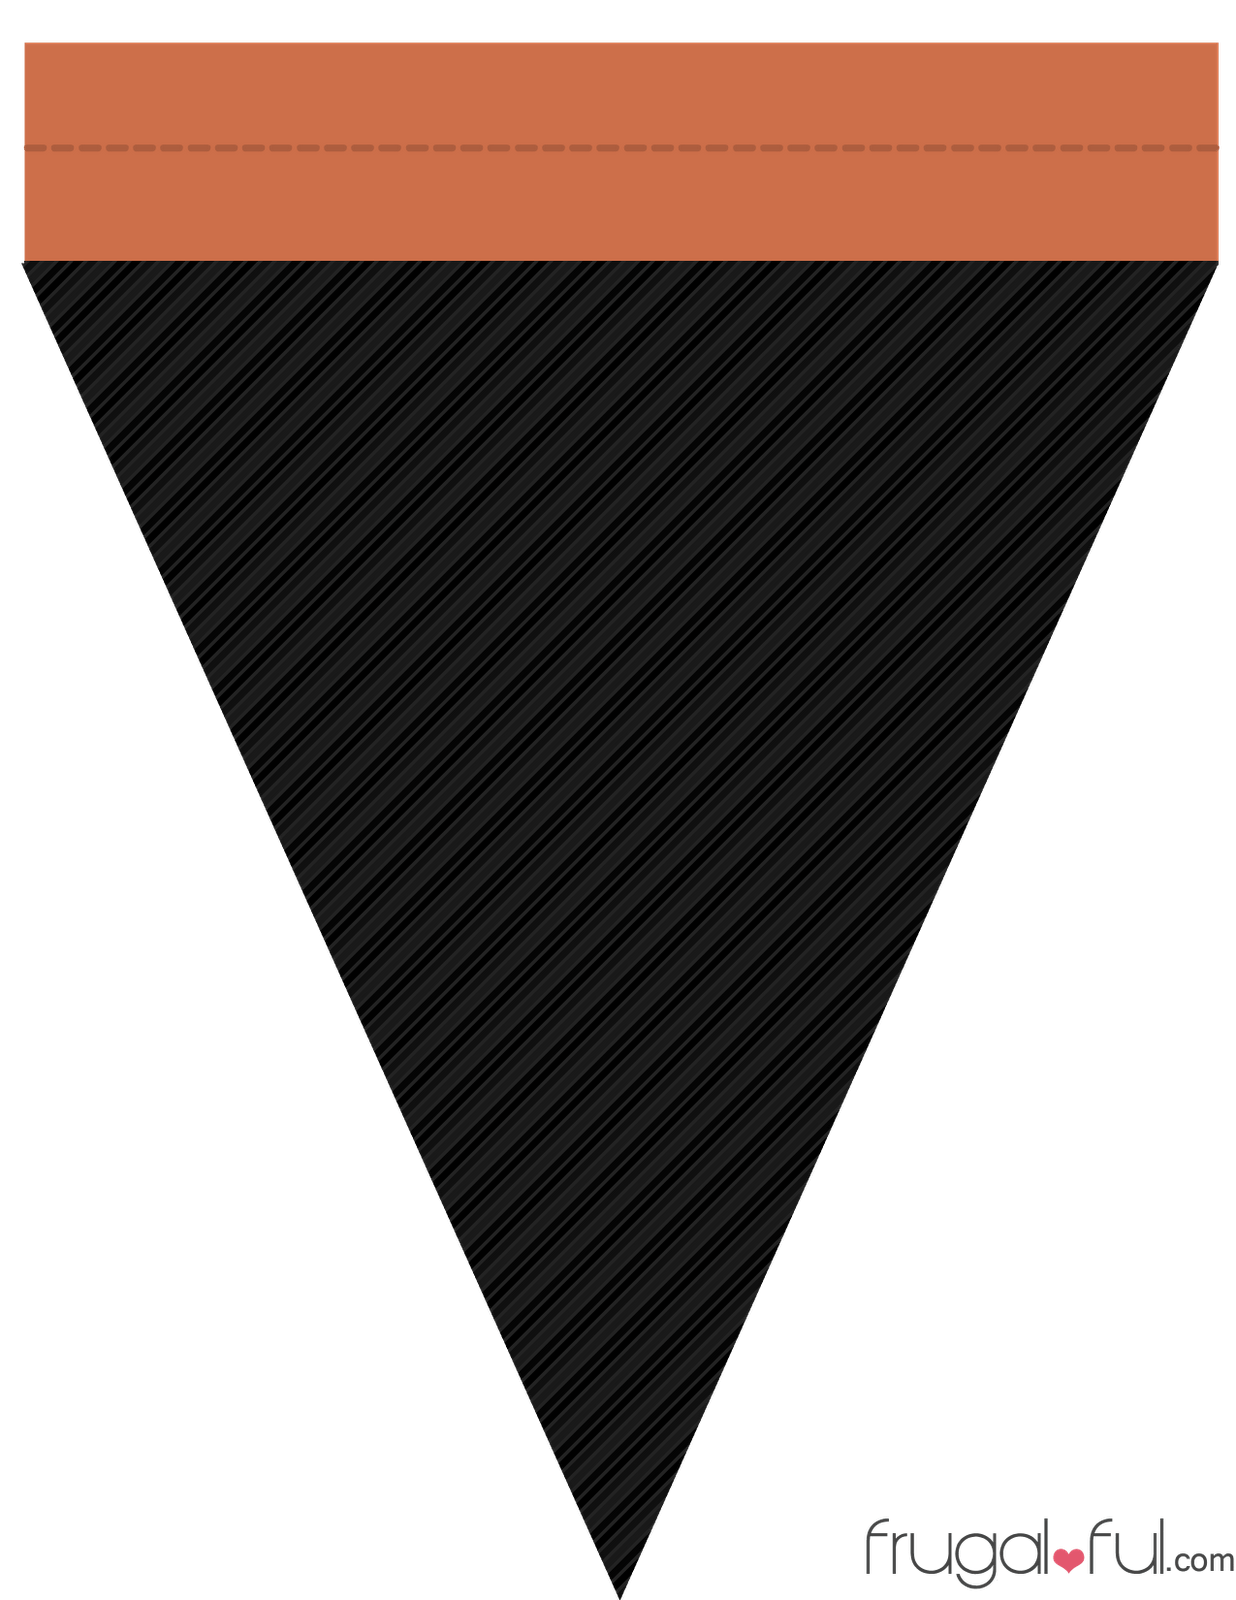 Diy free printable halloween triangle banner template diy free printable halloween triangle banner template maxwellsz